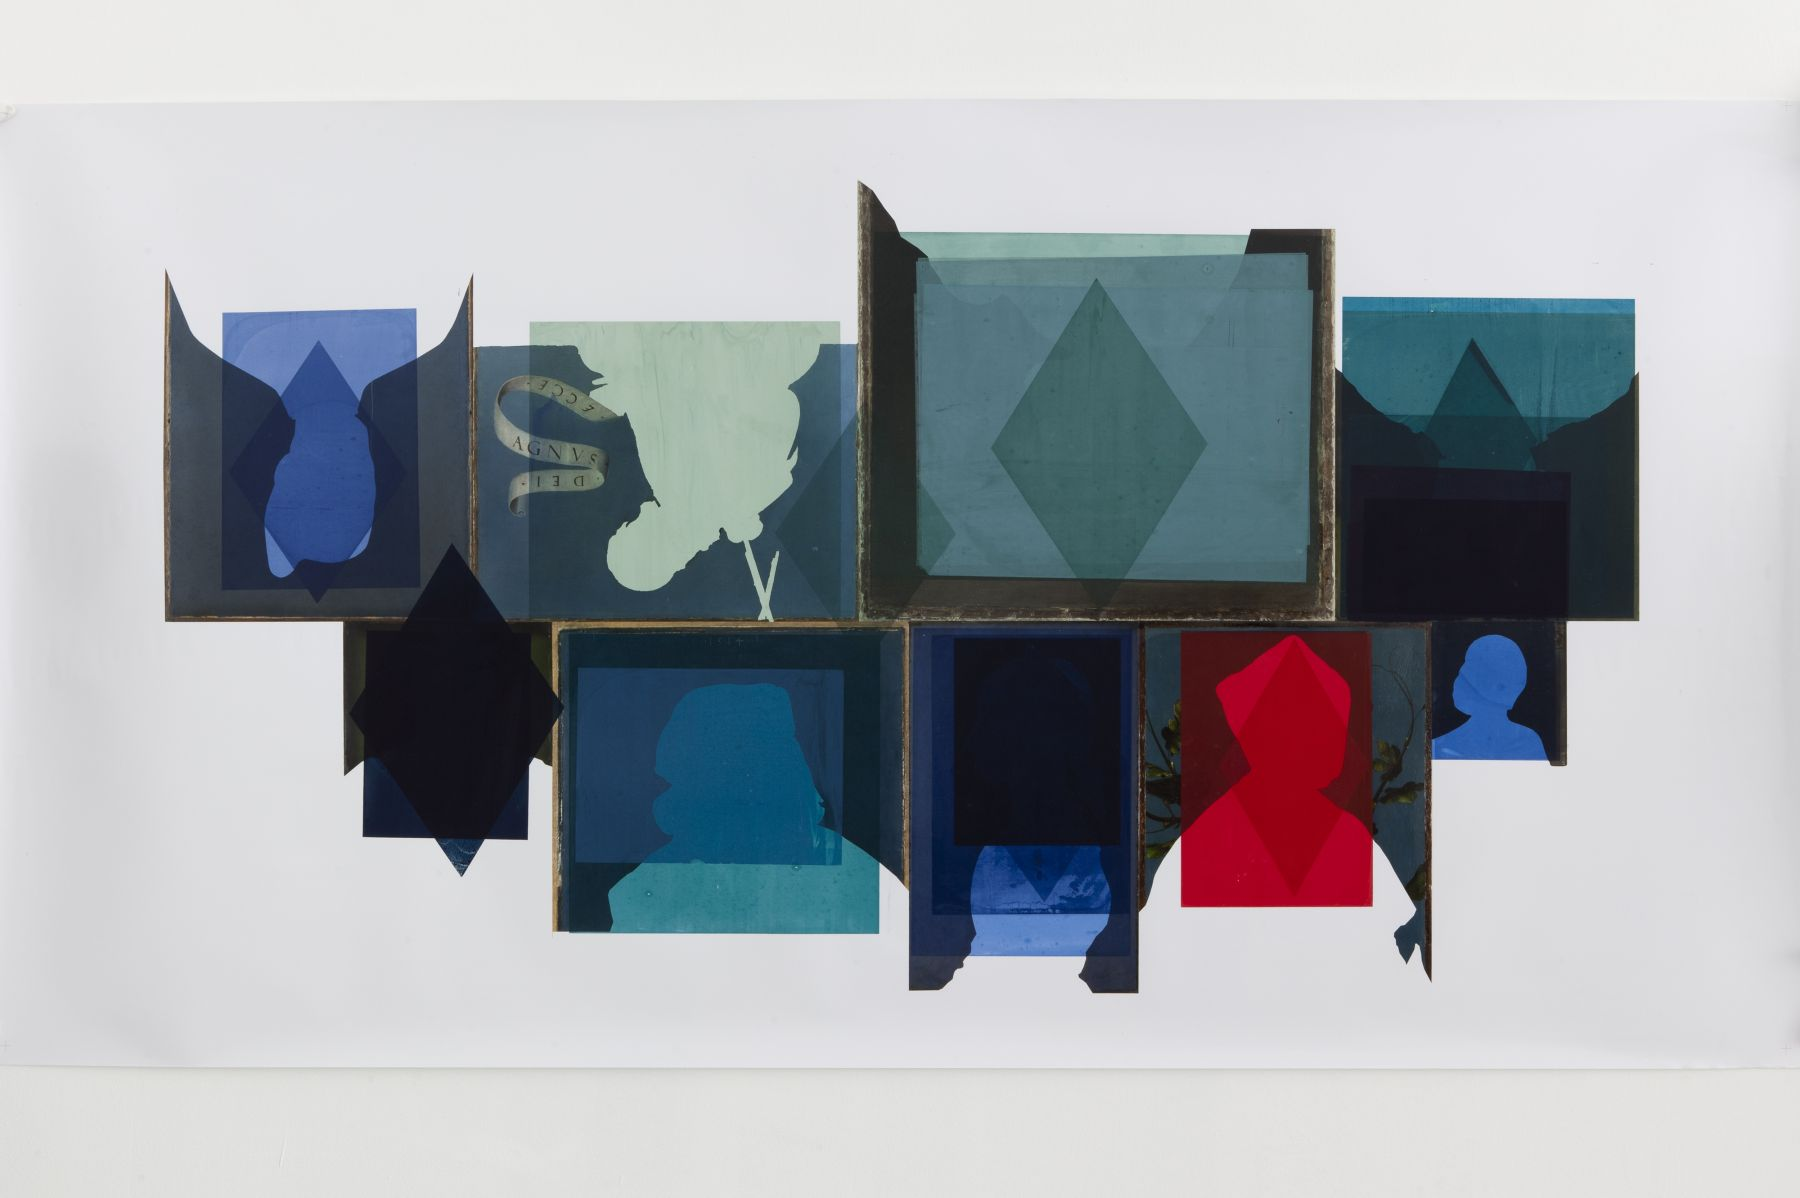 Lucy Skaer: Blanks and Ballast– installation view 10